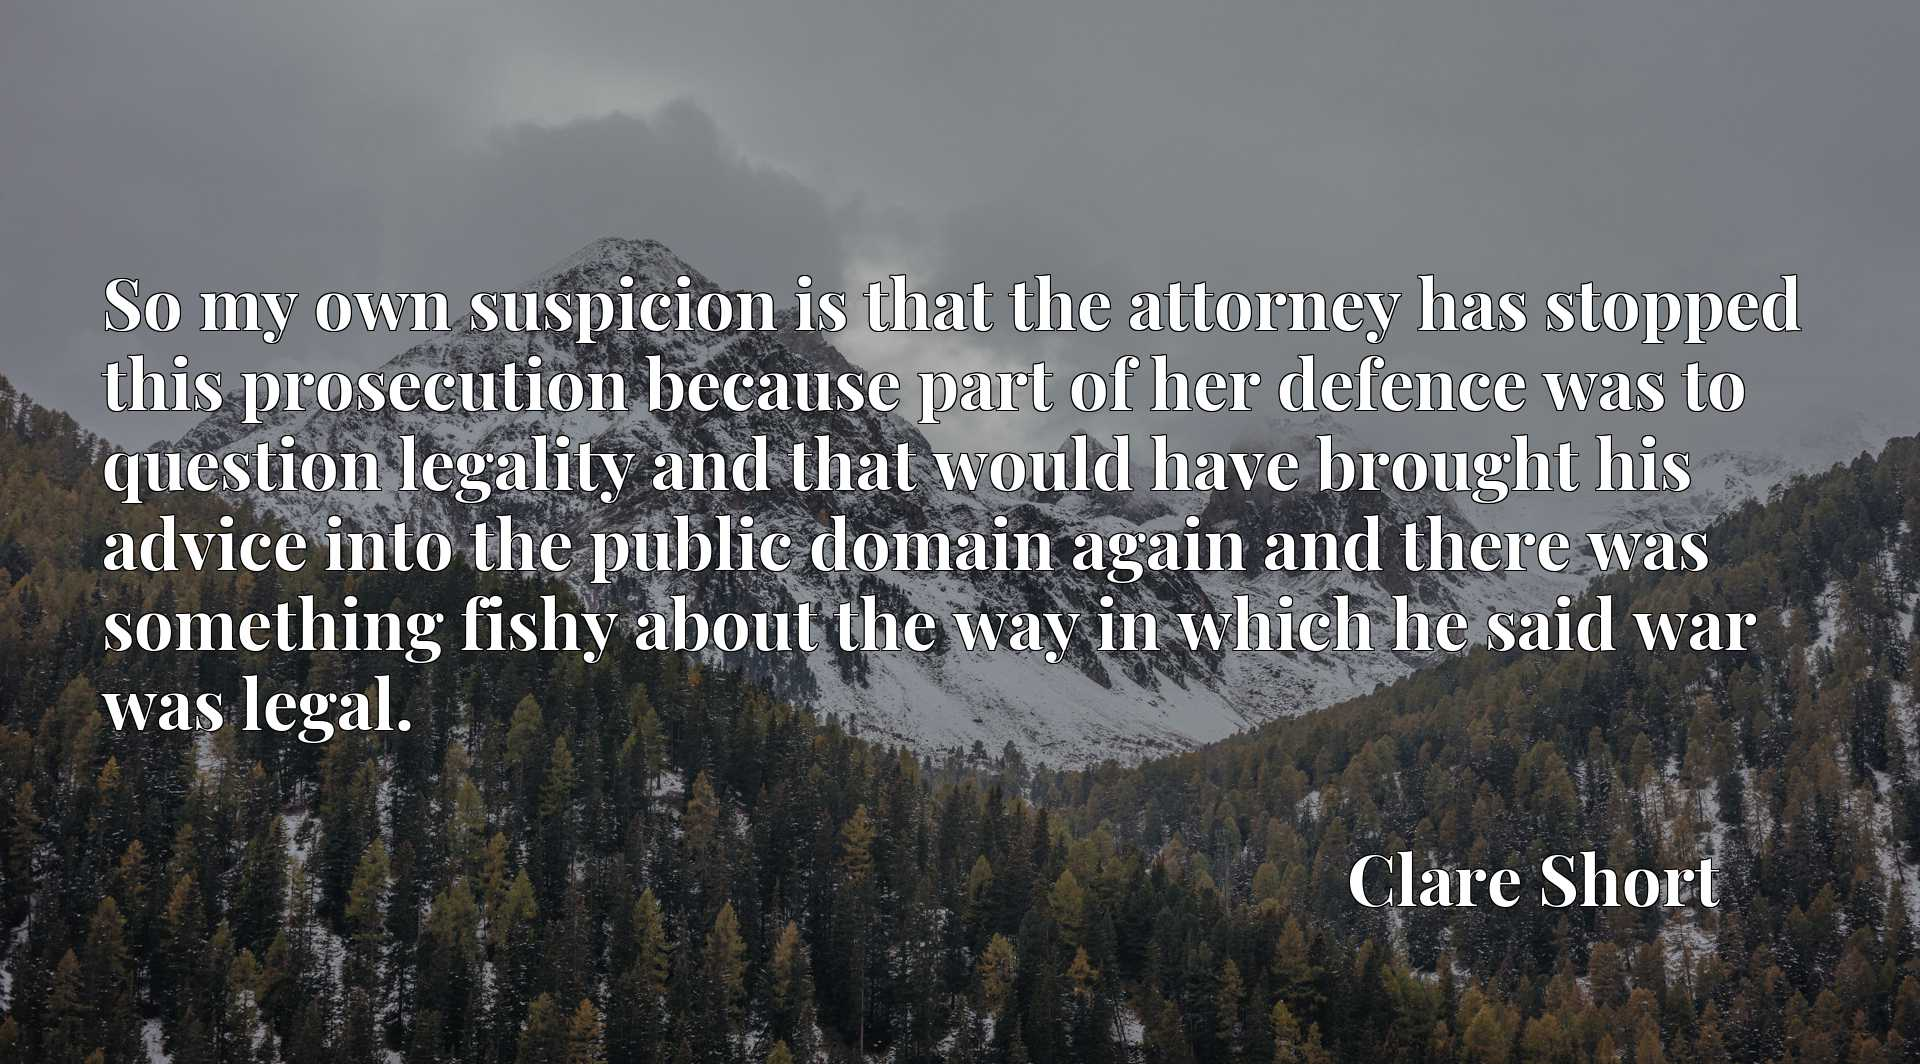 Quote Picture :So my own suspicion is that the attorney has stopped this prosecution because part of her defence was to question legality and that would have brought his advice into the public domain again and there was something fishy about the way in which he said war was legal.